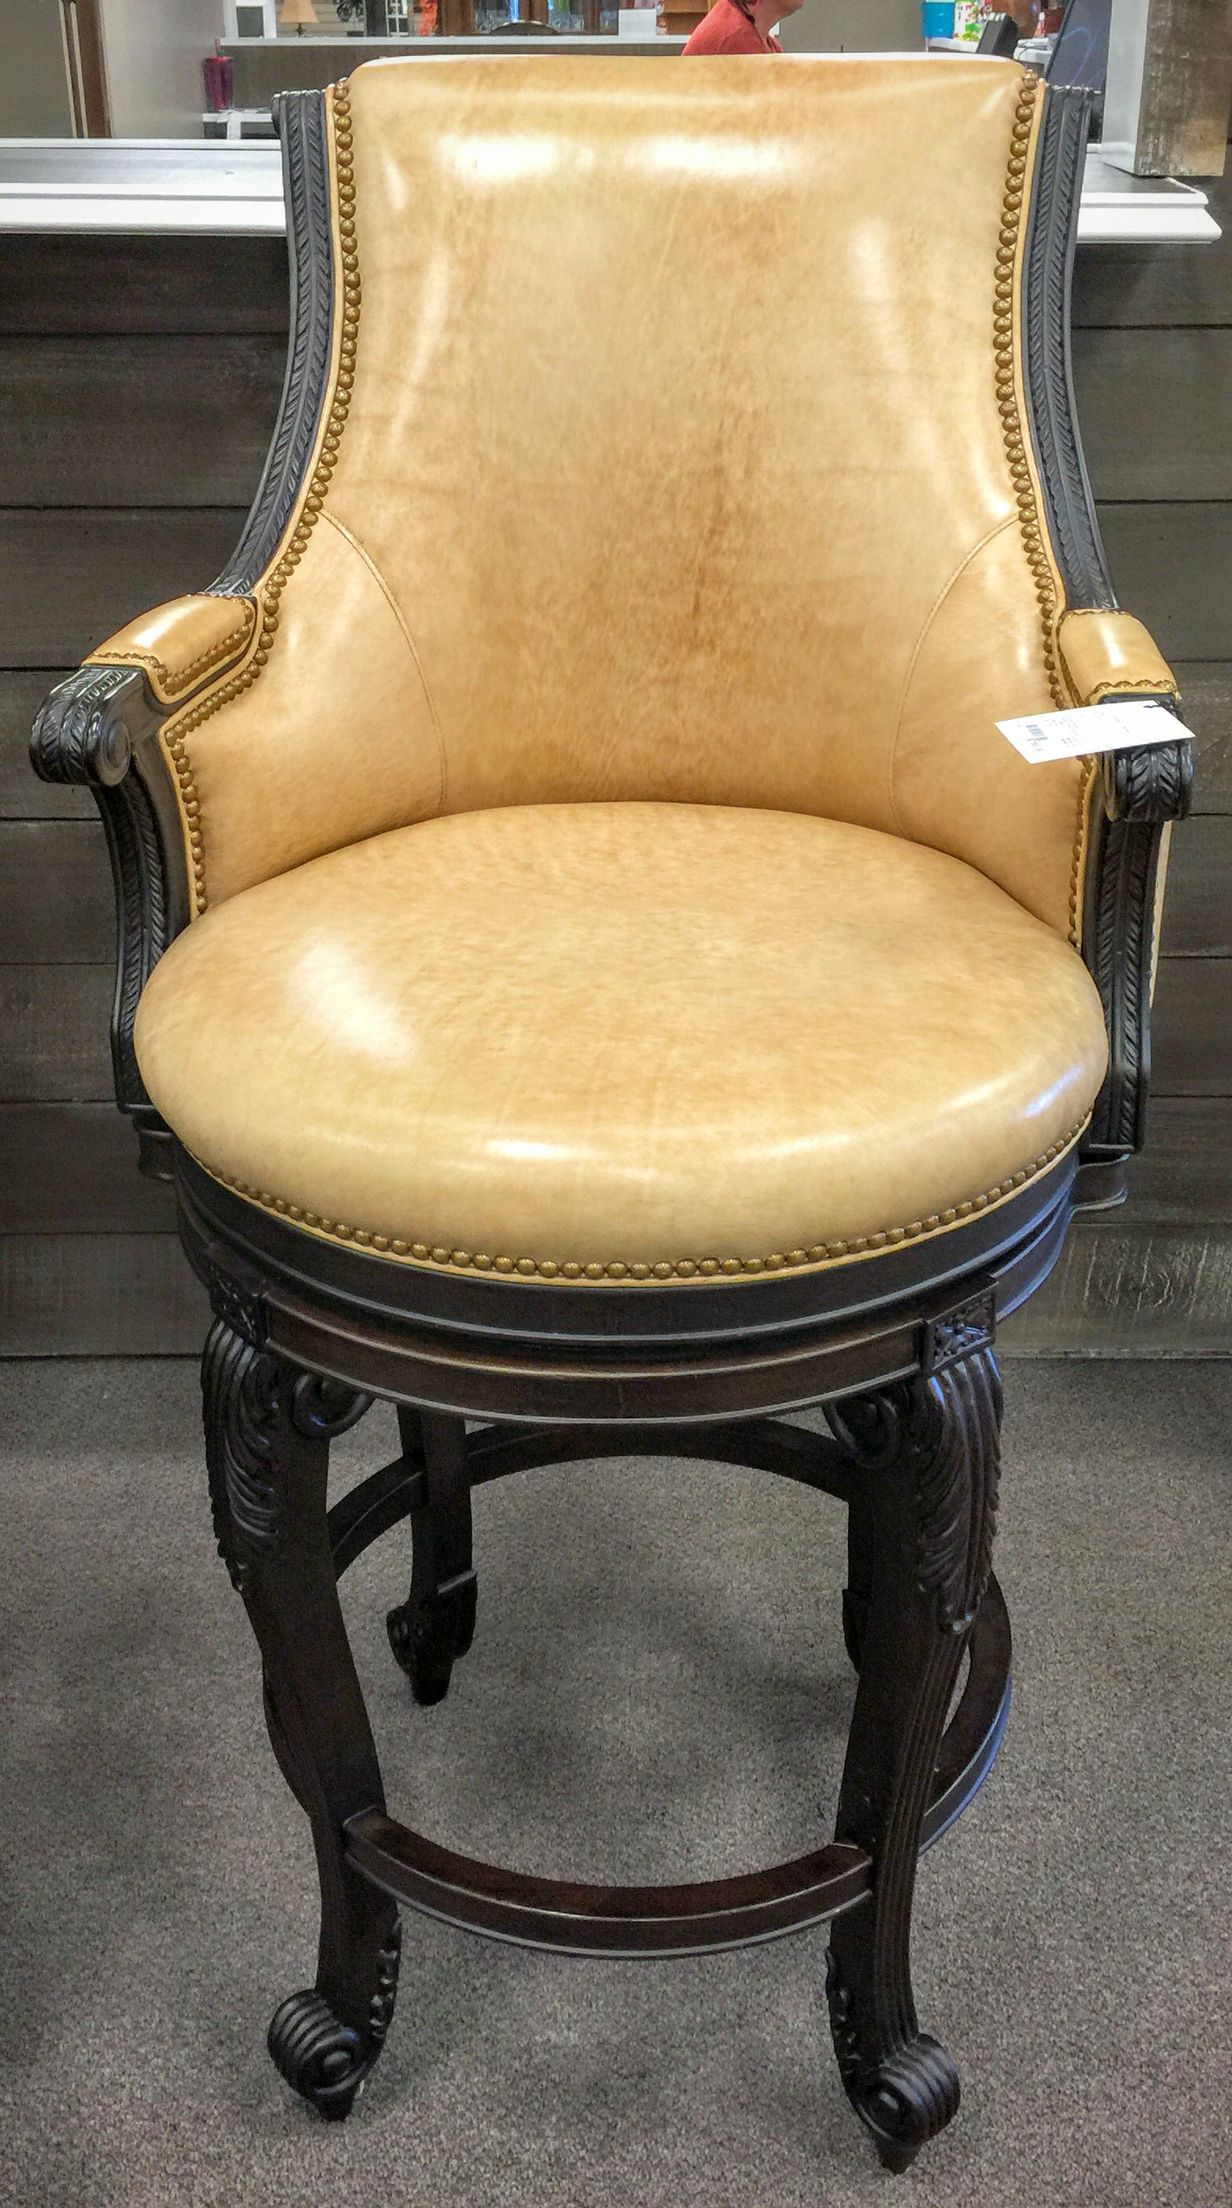 Admirable Hancock Moore Bar Stool 780 00 Beautiful Soft Leather Gmtry Best Dining Table And Chair Ideas Images Gmtryco